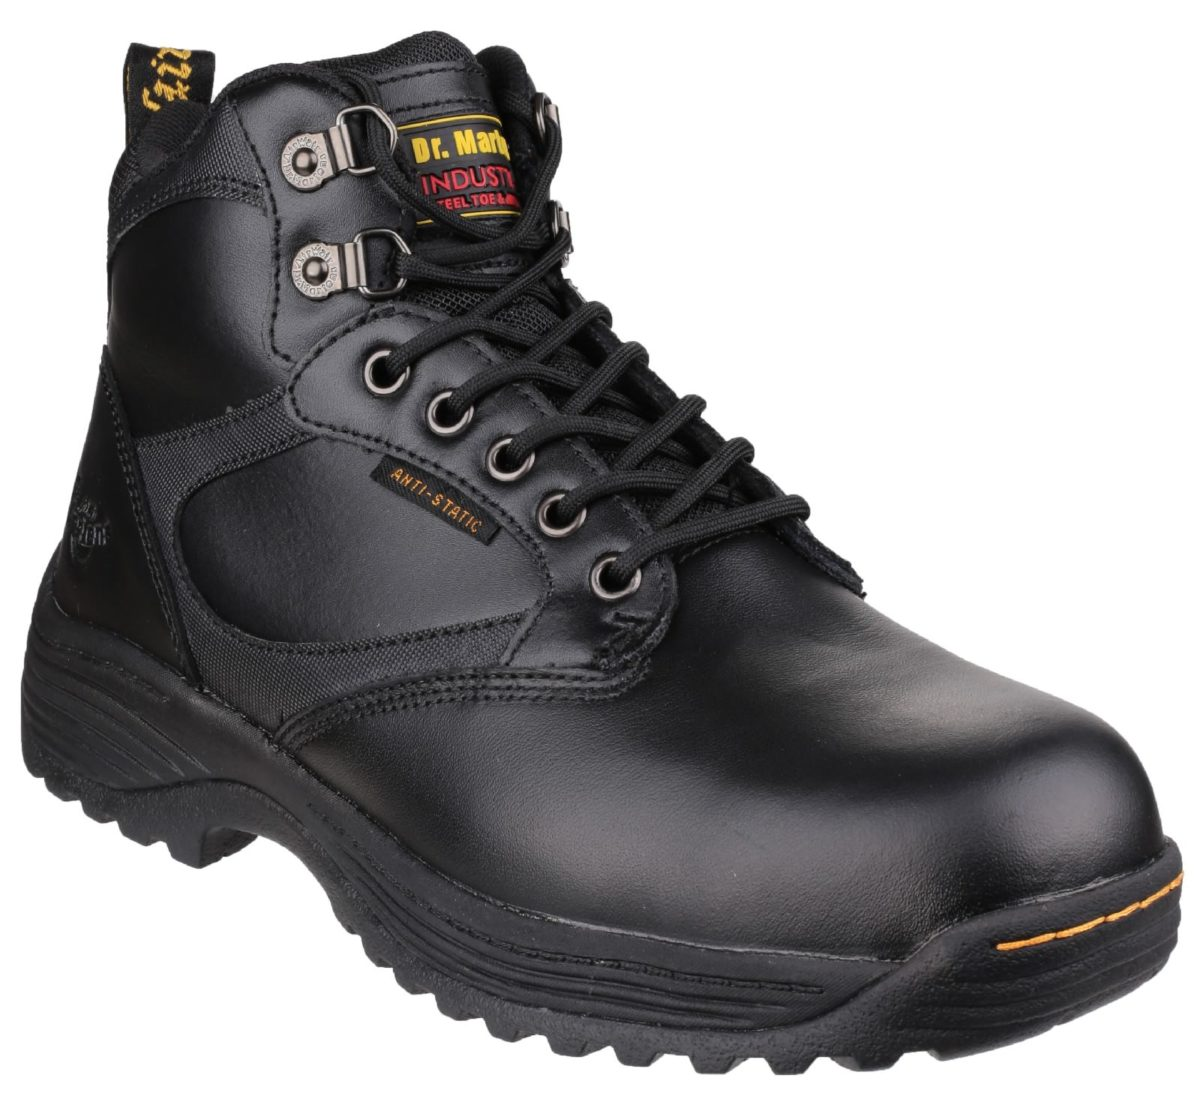 Dr Martens FS205 Pad Top Safety Boot